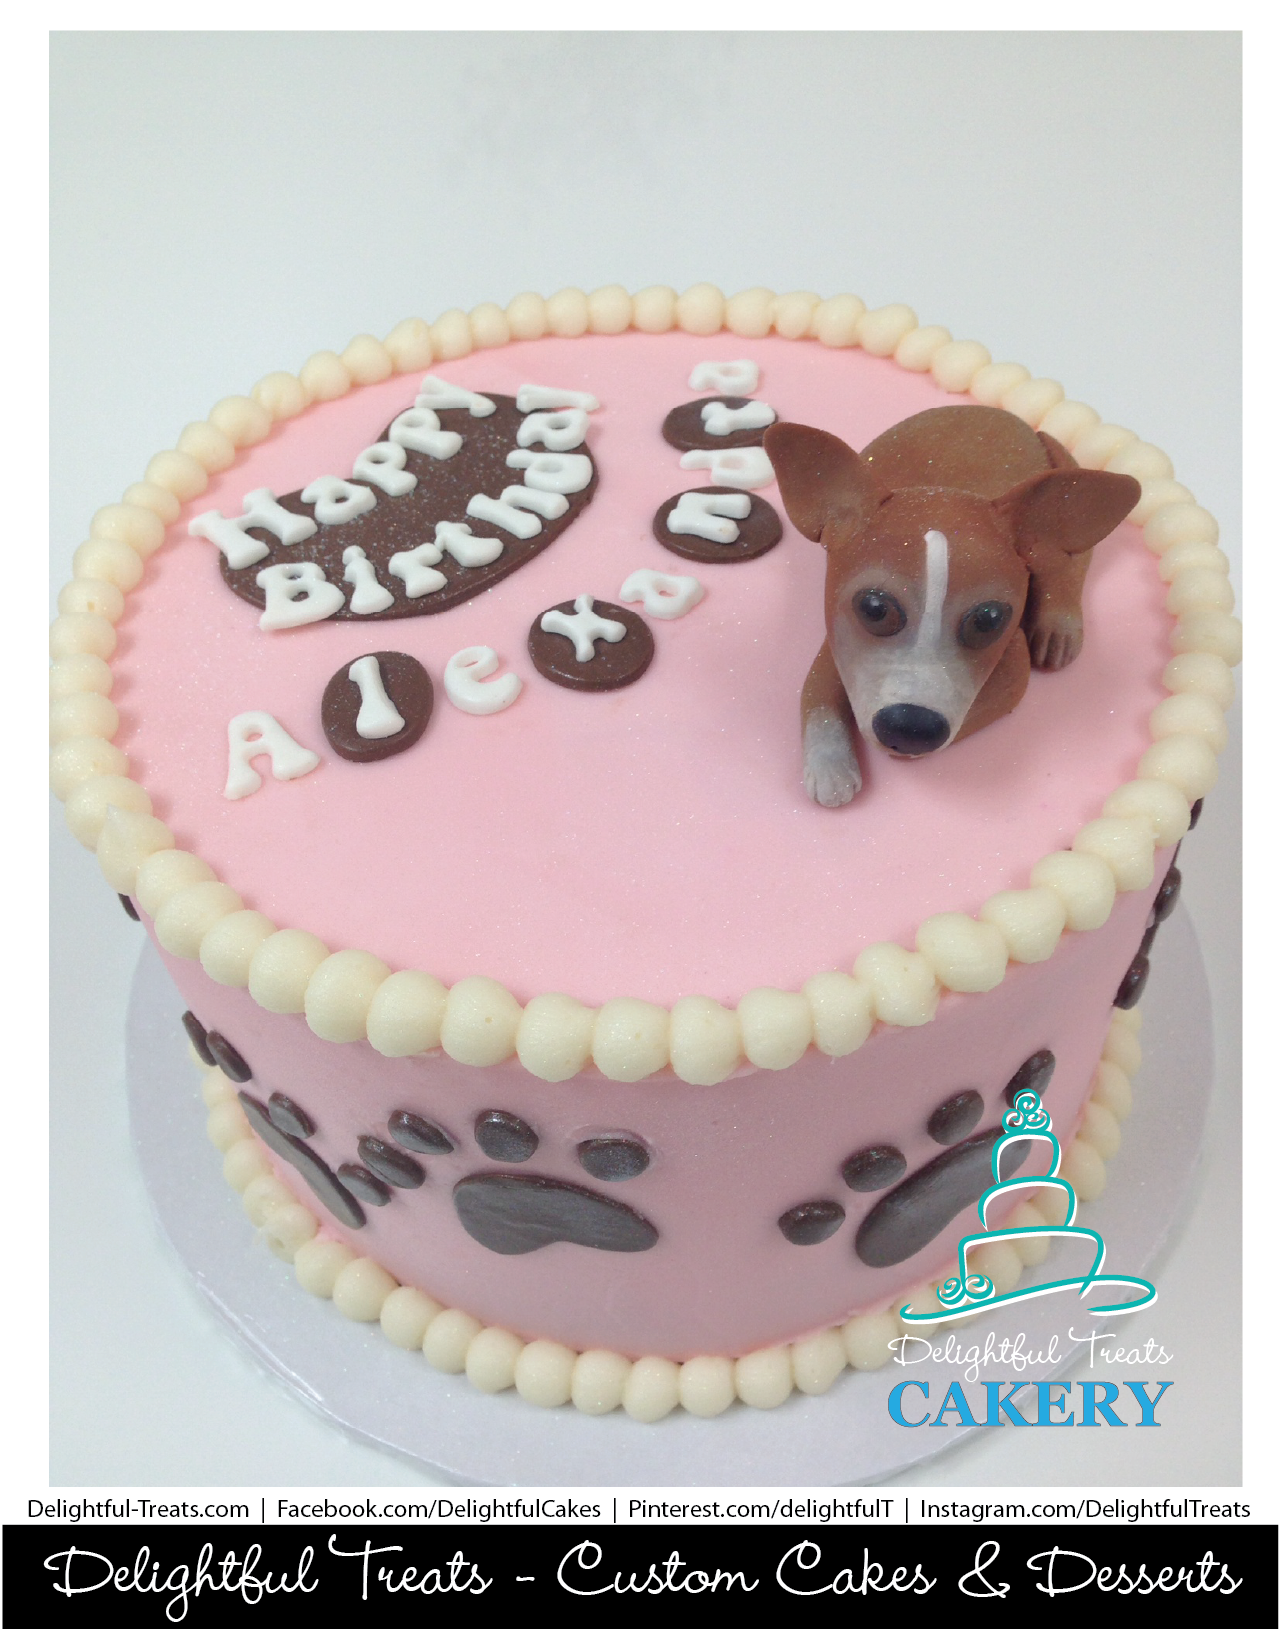 Pink Buttercream Cake With Brown Fondant Paw Prints Custom 3D Edible Gumpaste Chihuahua Topper By Delightful Treats Cakery